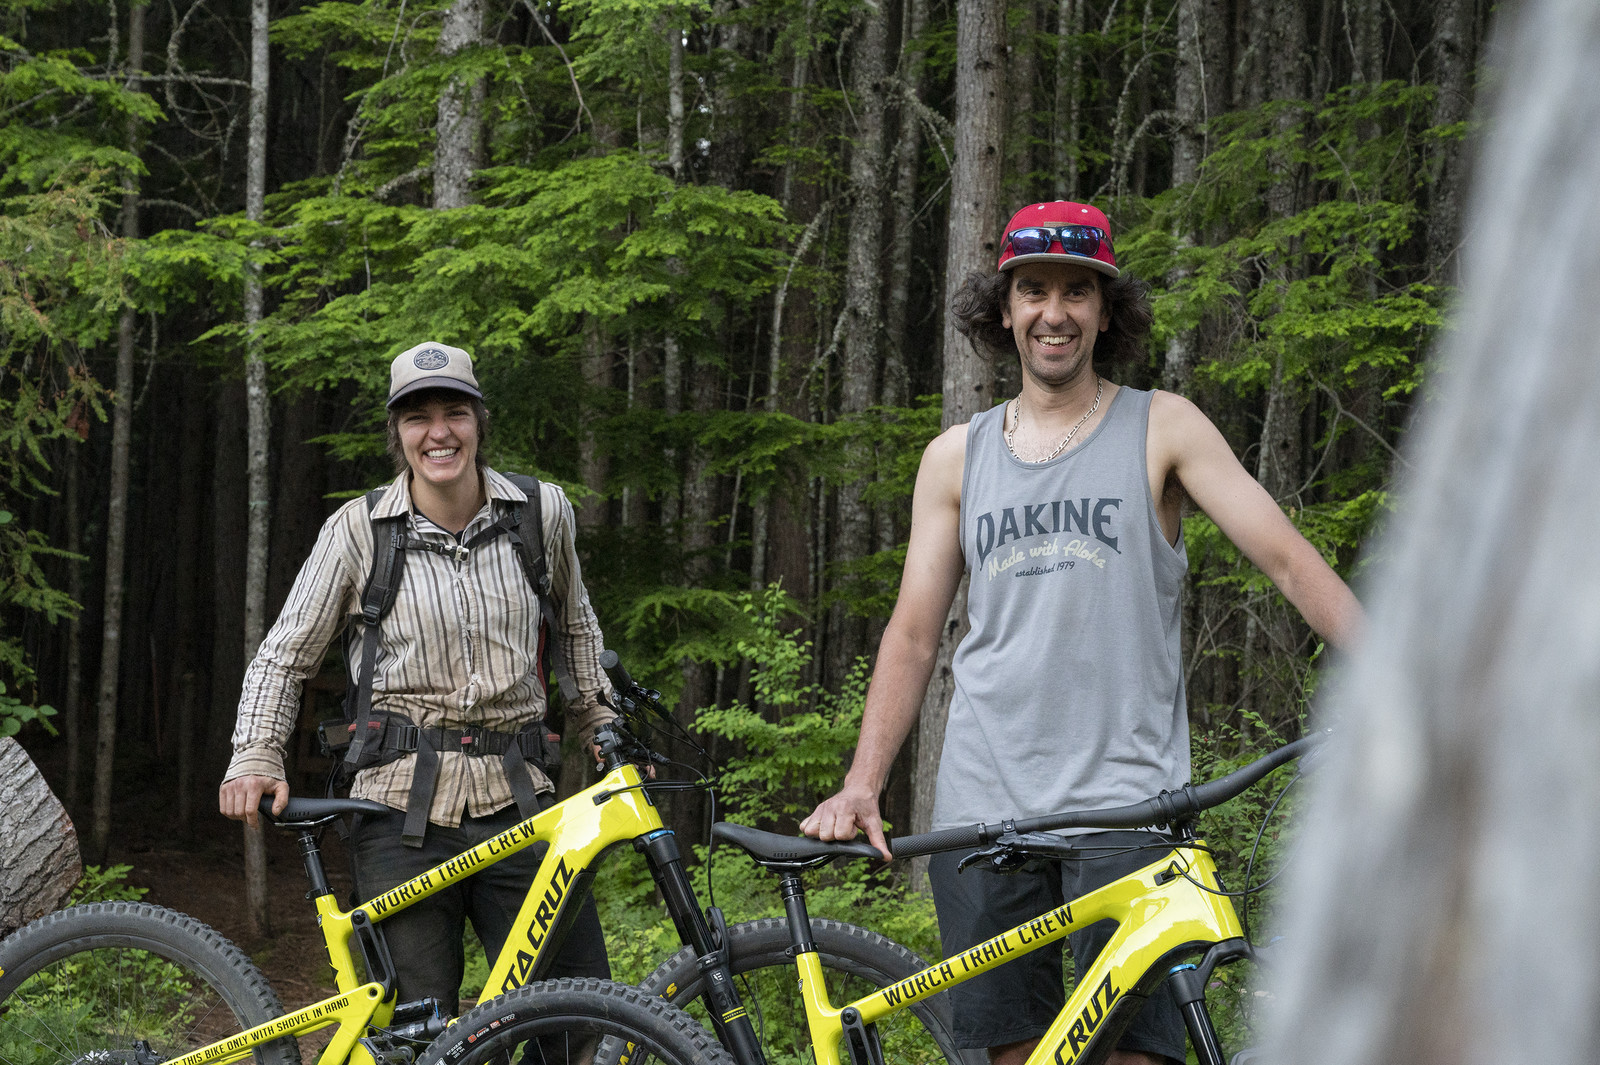 Renee and Benoit of WORCA trail crew have been enjoying the new tools!